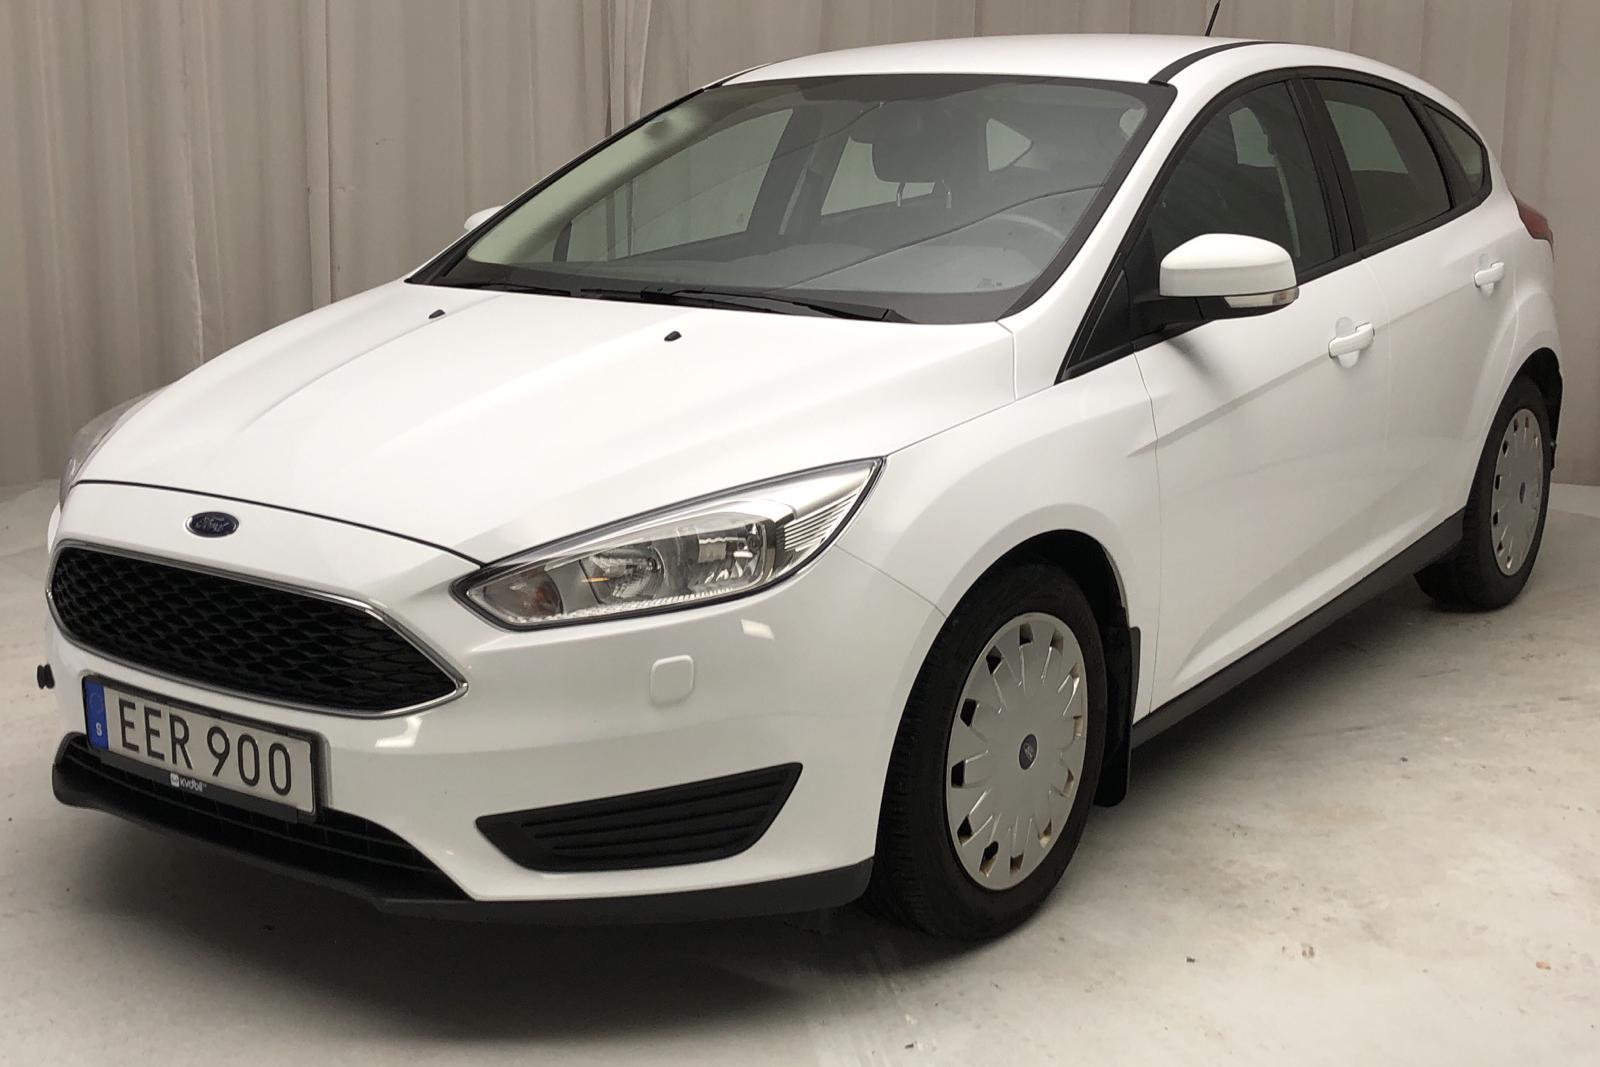 Ford Focus 1.5 TDCi ECOnetic 5dr (105hk) - 70 860 km - Manual - white - 2016